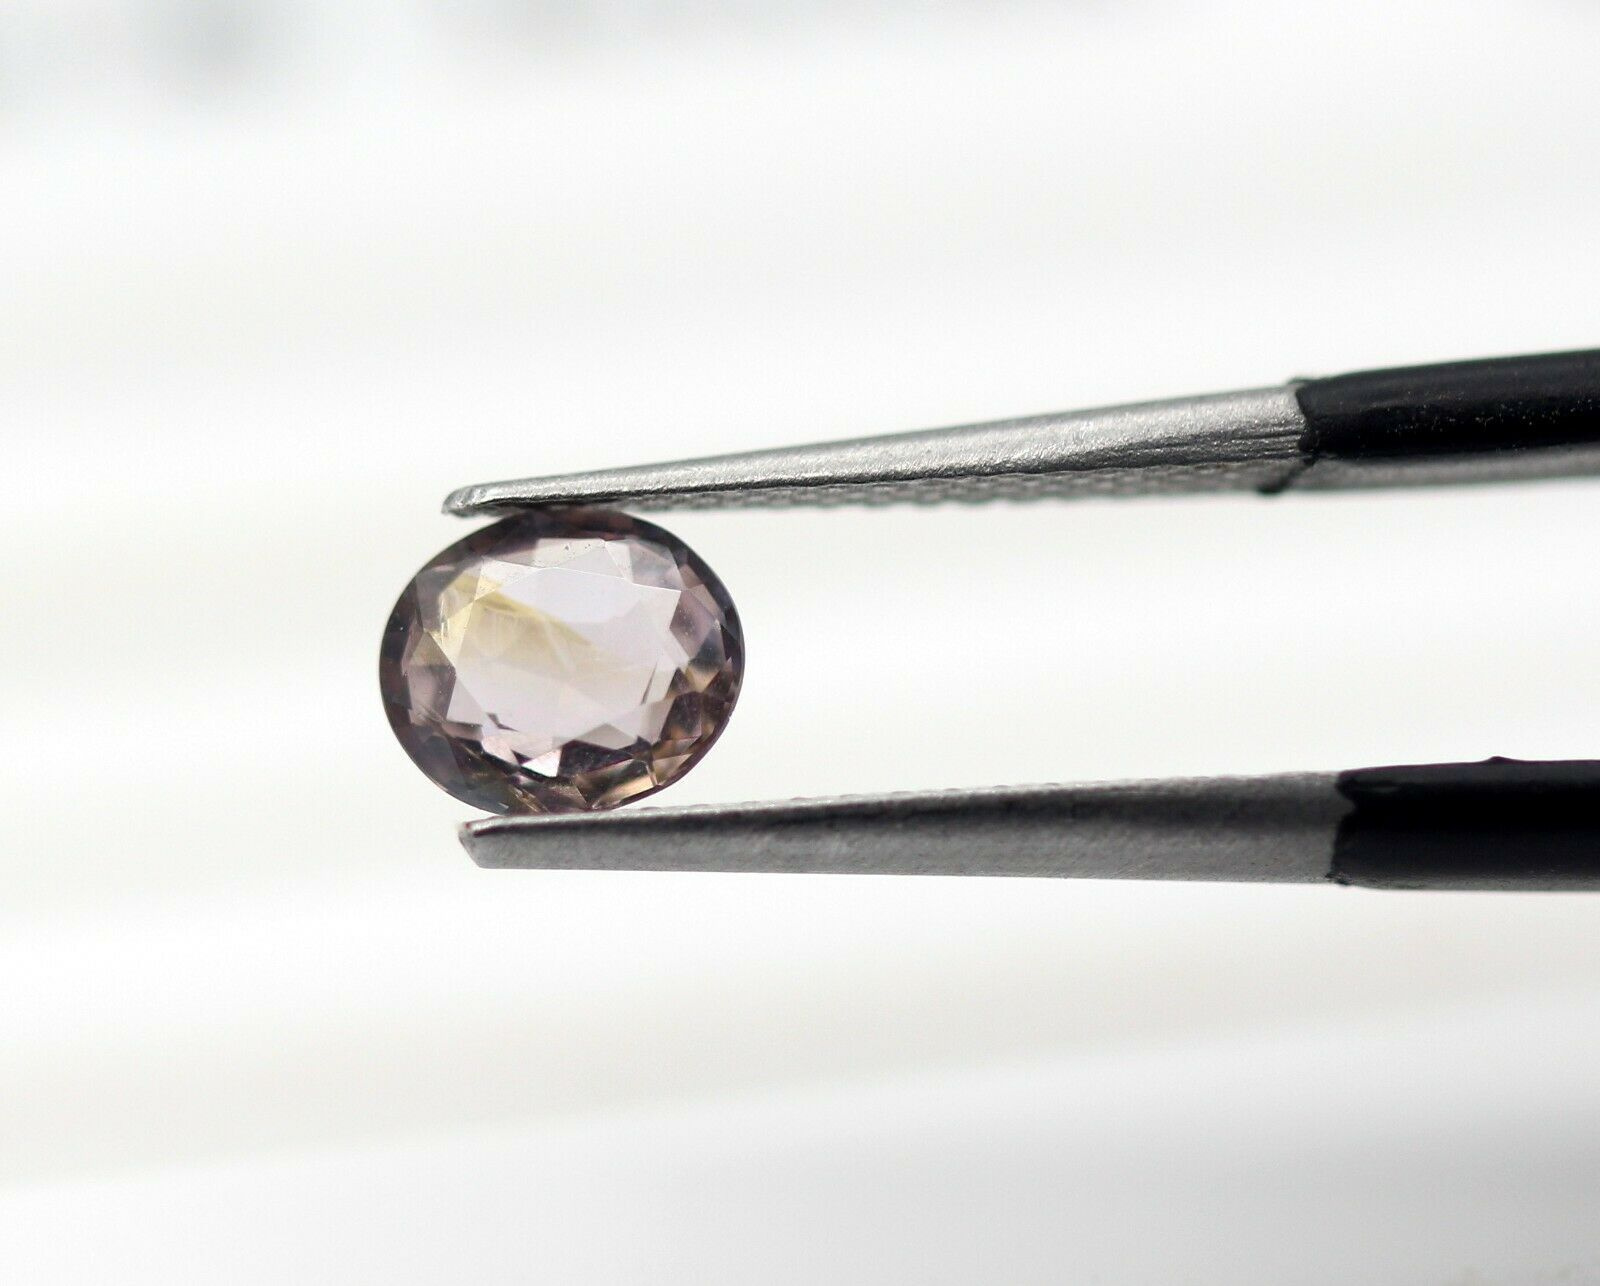 0.63 Ct Sapphire Loose Oval Natural Gemstone Sri Lankan Copper Brown Color Certified